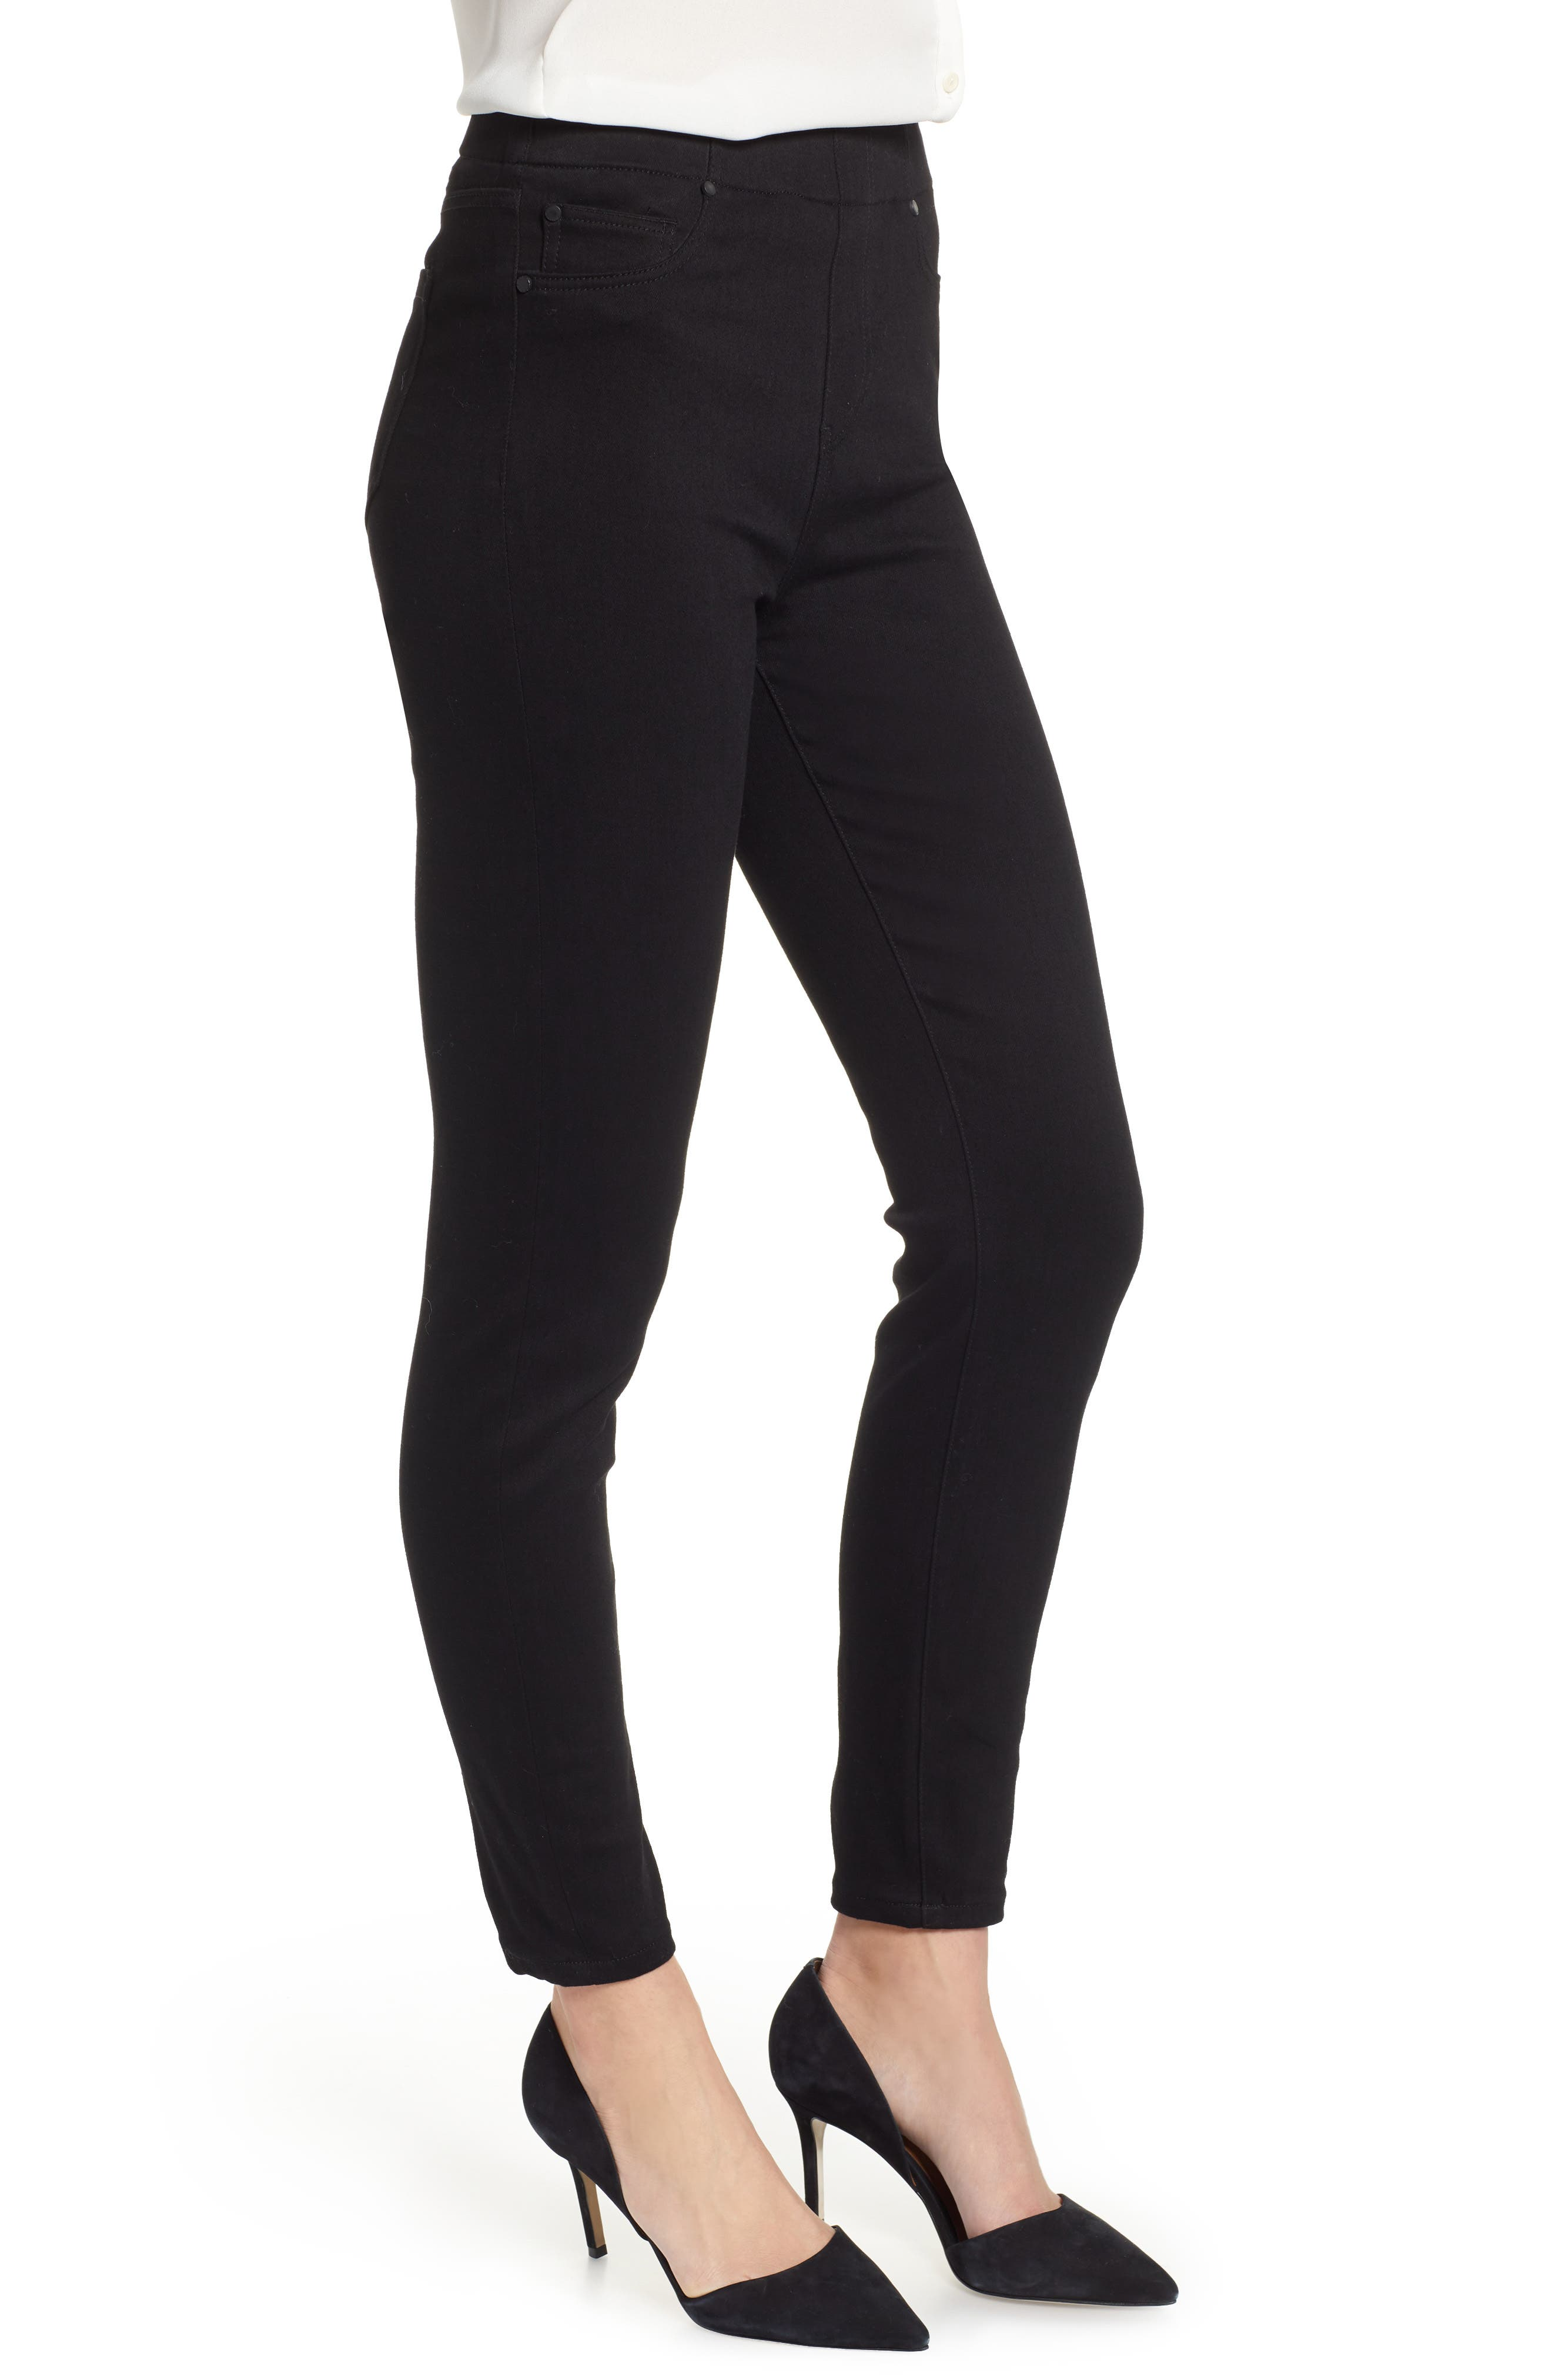 Chloe Pull-On Stretch Skinny Ankle Jeans,                             Alternate thumbnail 3, color,                             BLACK RINSE